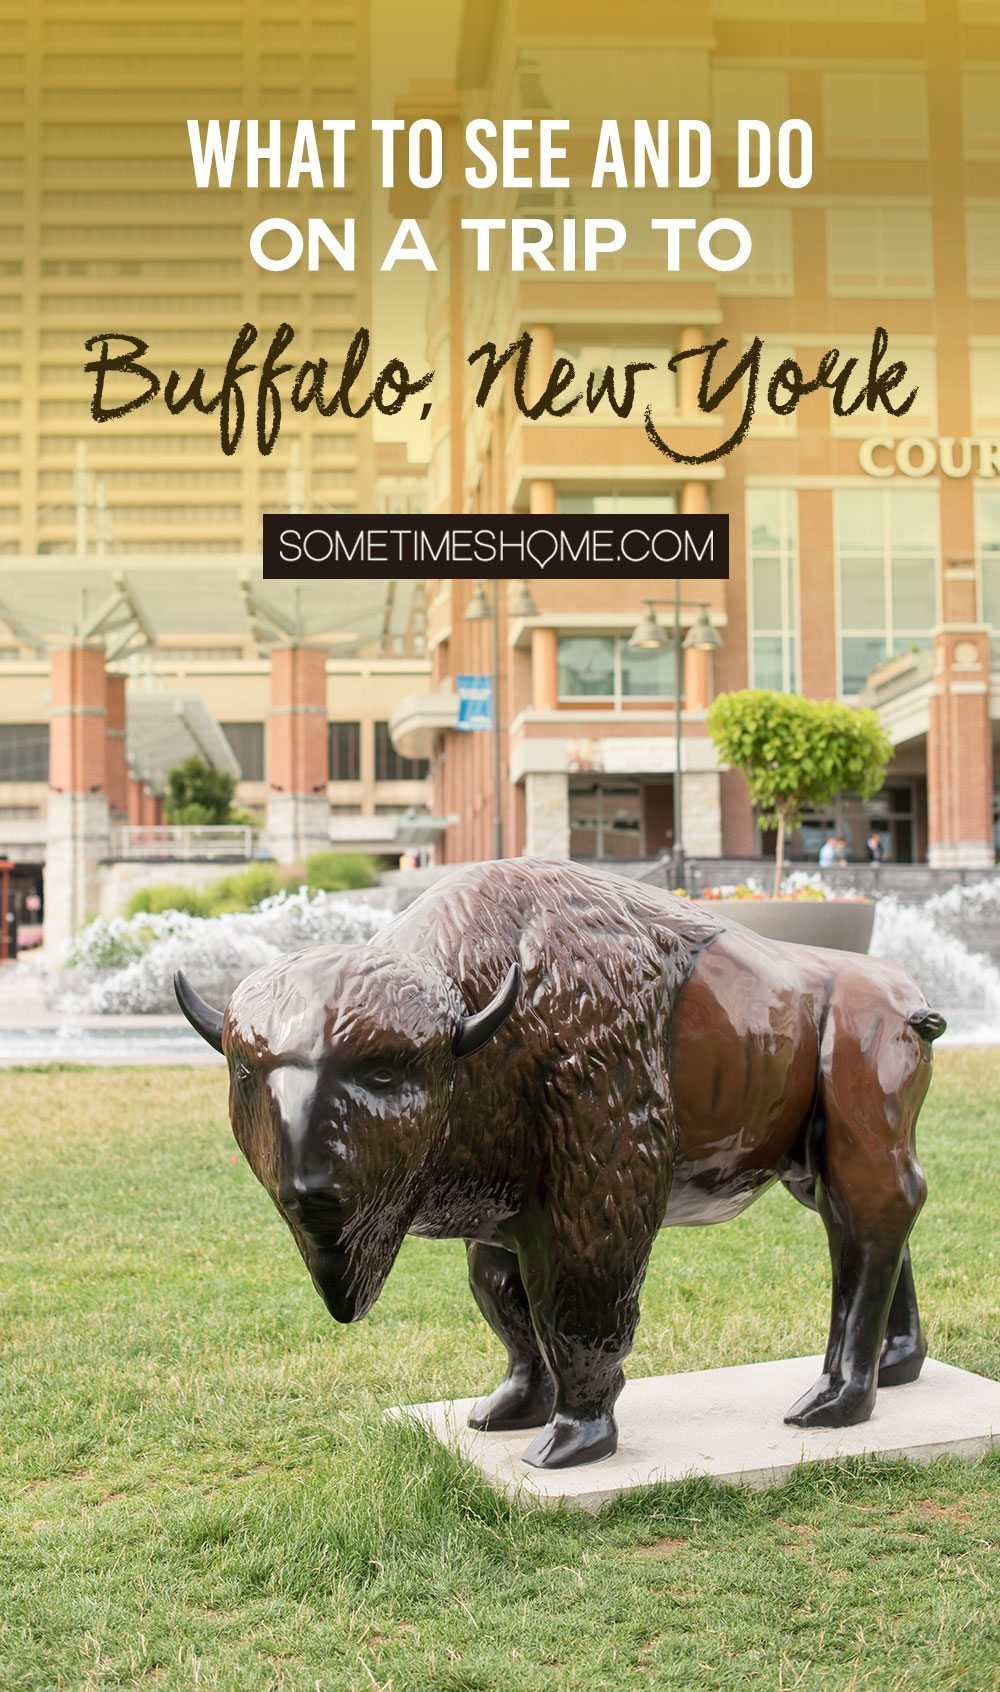 Things to do in Buffalo, NY including great restaurants to get the best food, some top neighborhoods and hidden gems, and architecture whether winter, summer, fall or spring. Sometimes Home posts all the details and photography in this informative article! #BuffaloNY #BuffaloNiagara